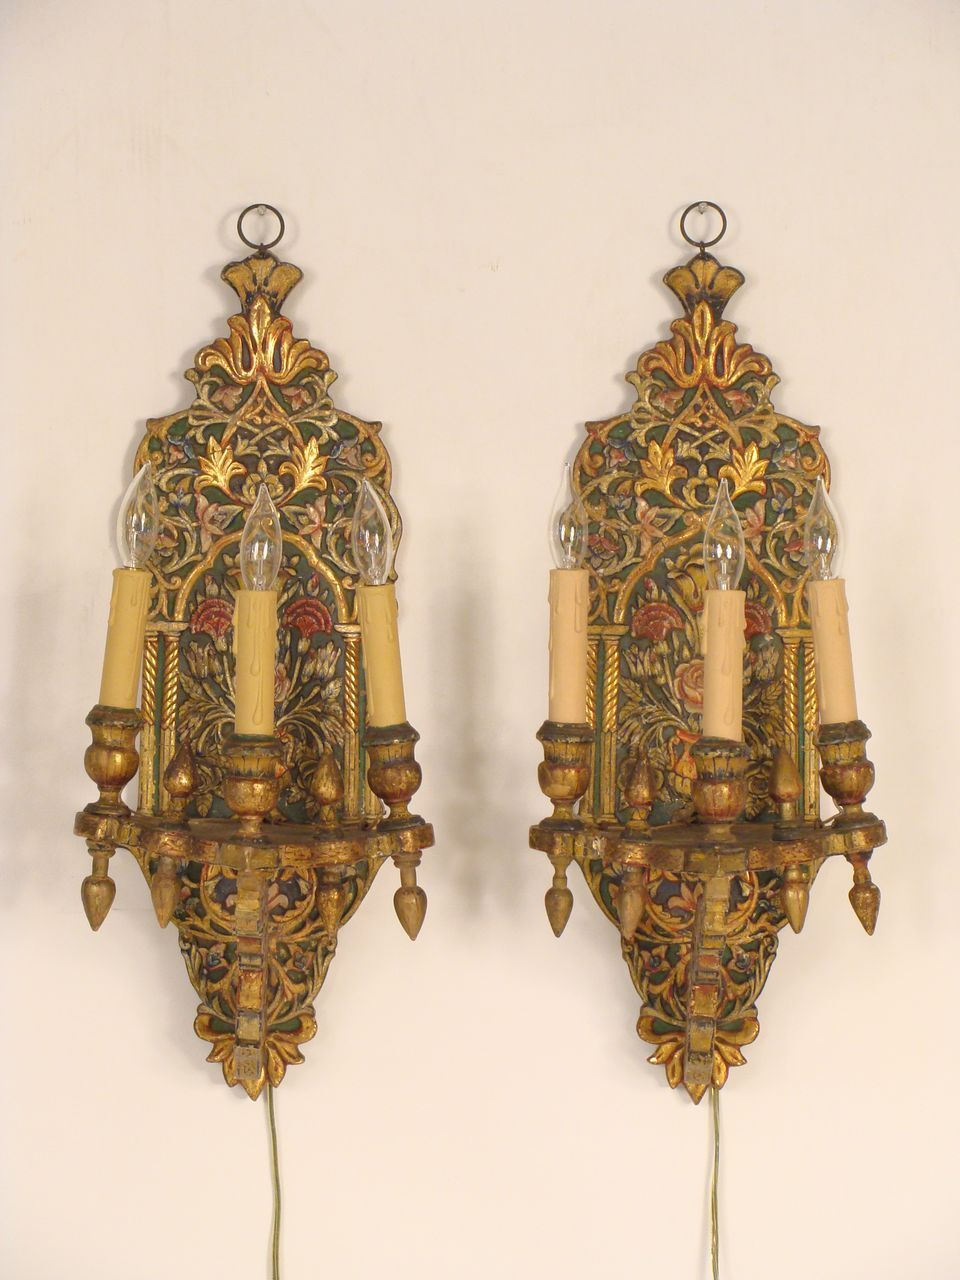 Moroccan Wall Lights Silver : Moroccan wall sconces from nicholsonsantiques on Ruby Lane